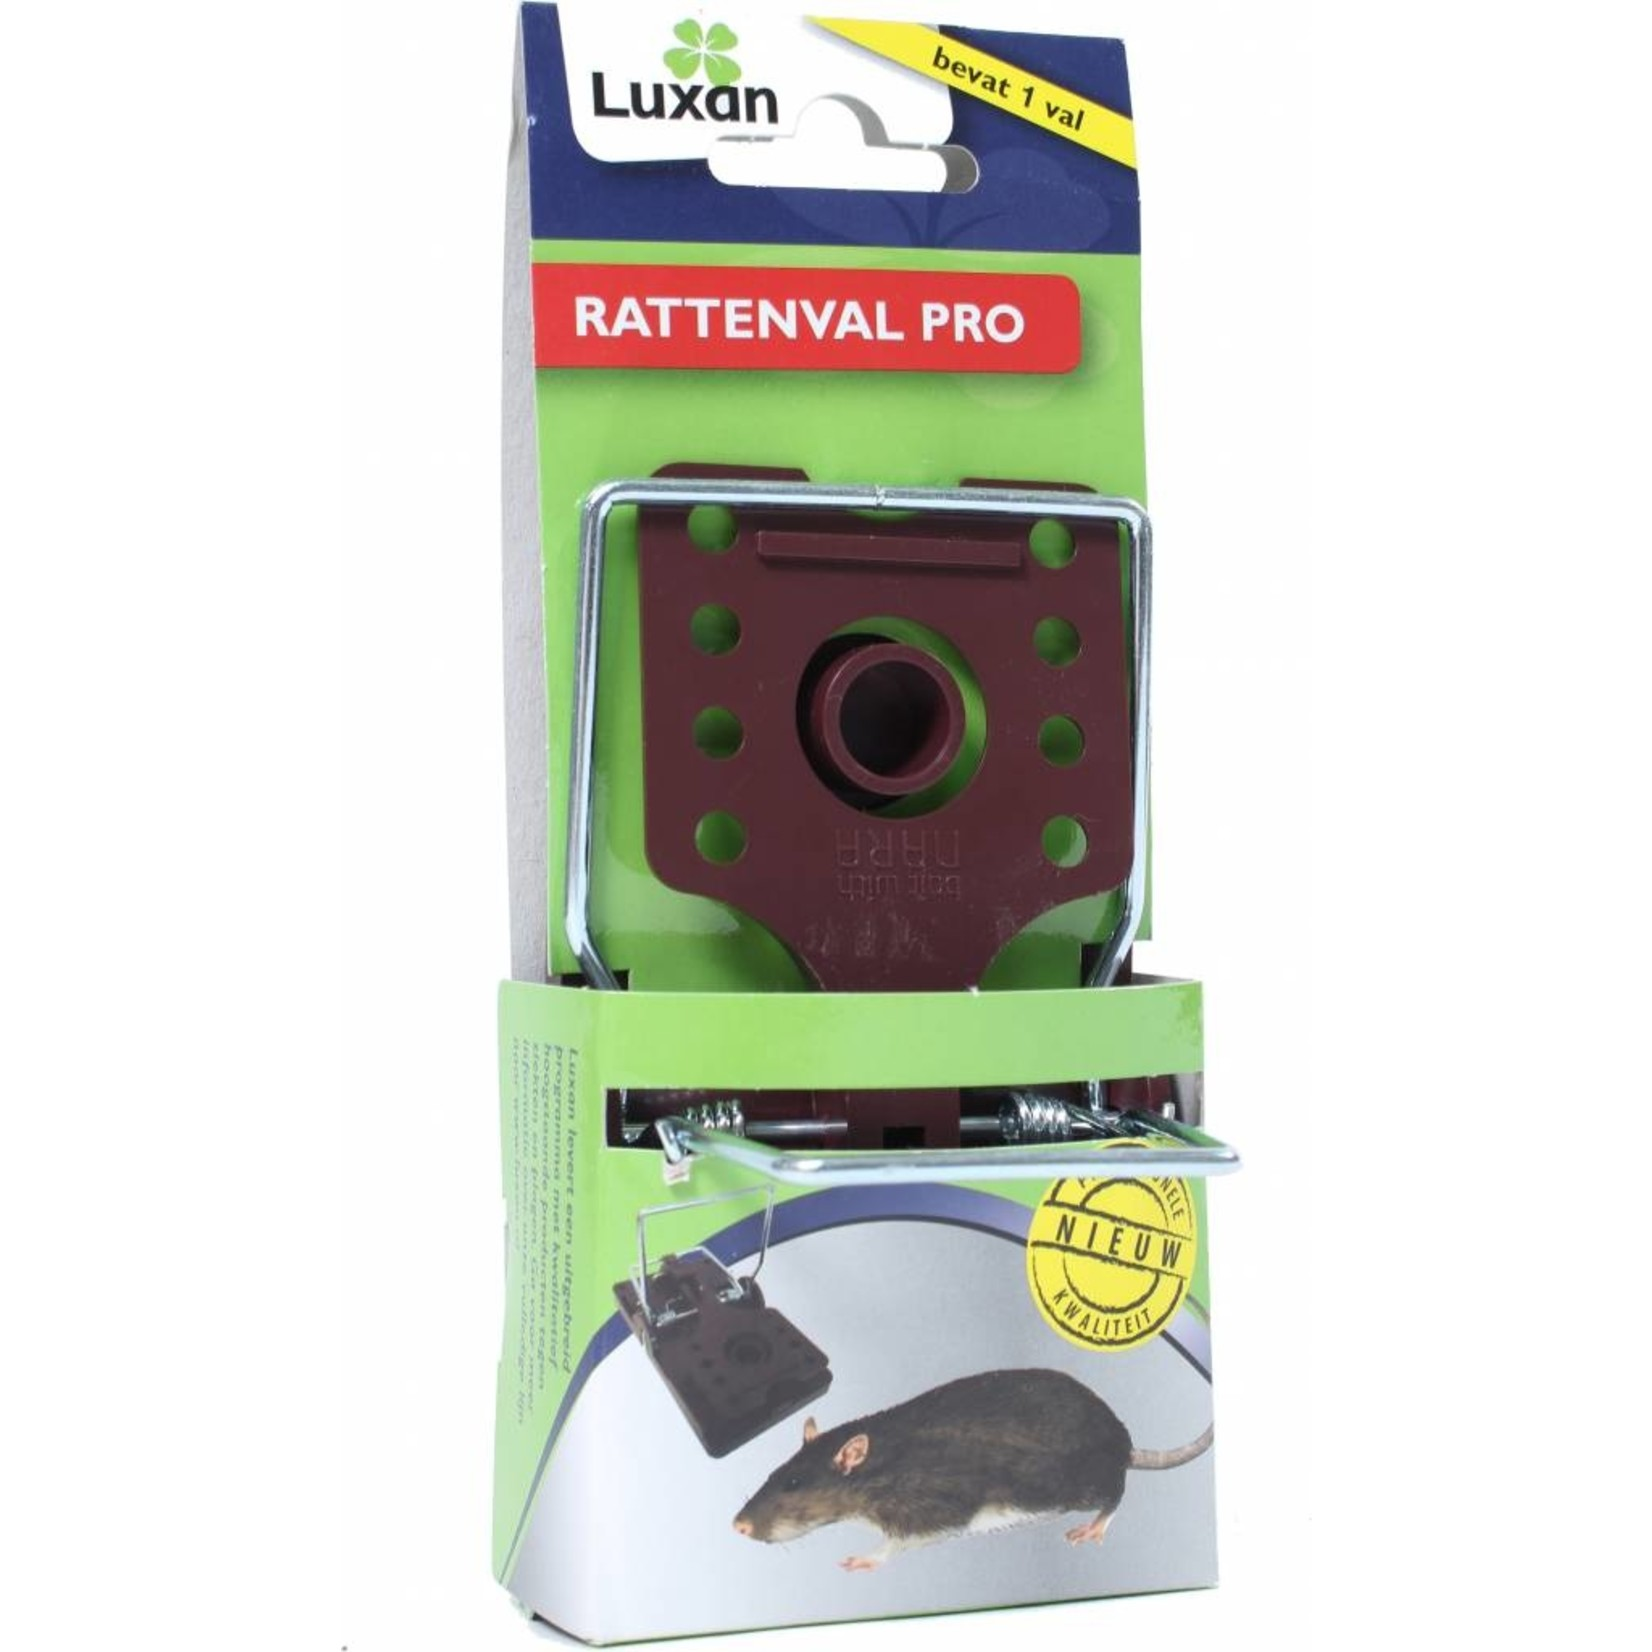 Luxan Rattenval Pro